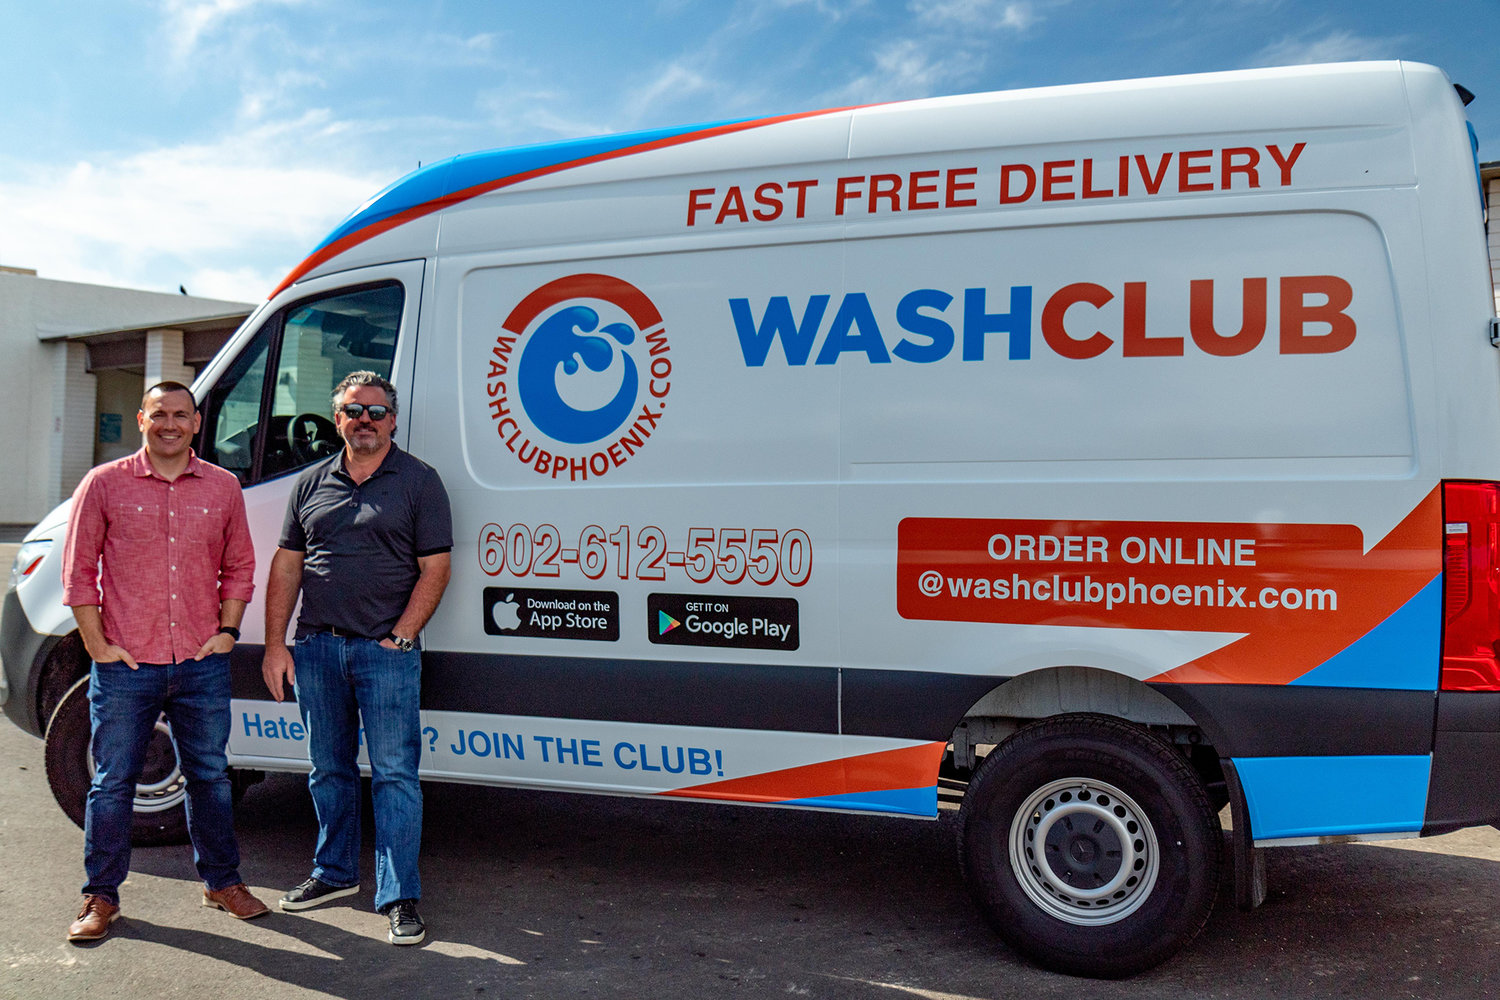 WashClub Phoenix, a national app-based laundry service that launched in the Valley in the spring, is now available in Surprise and the Sun Cities.